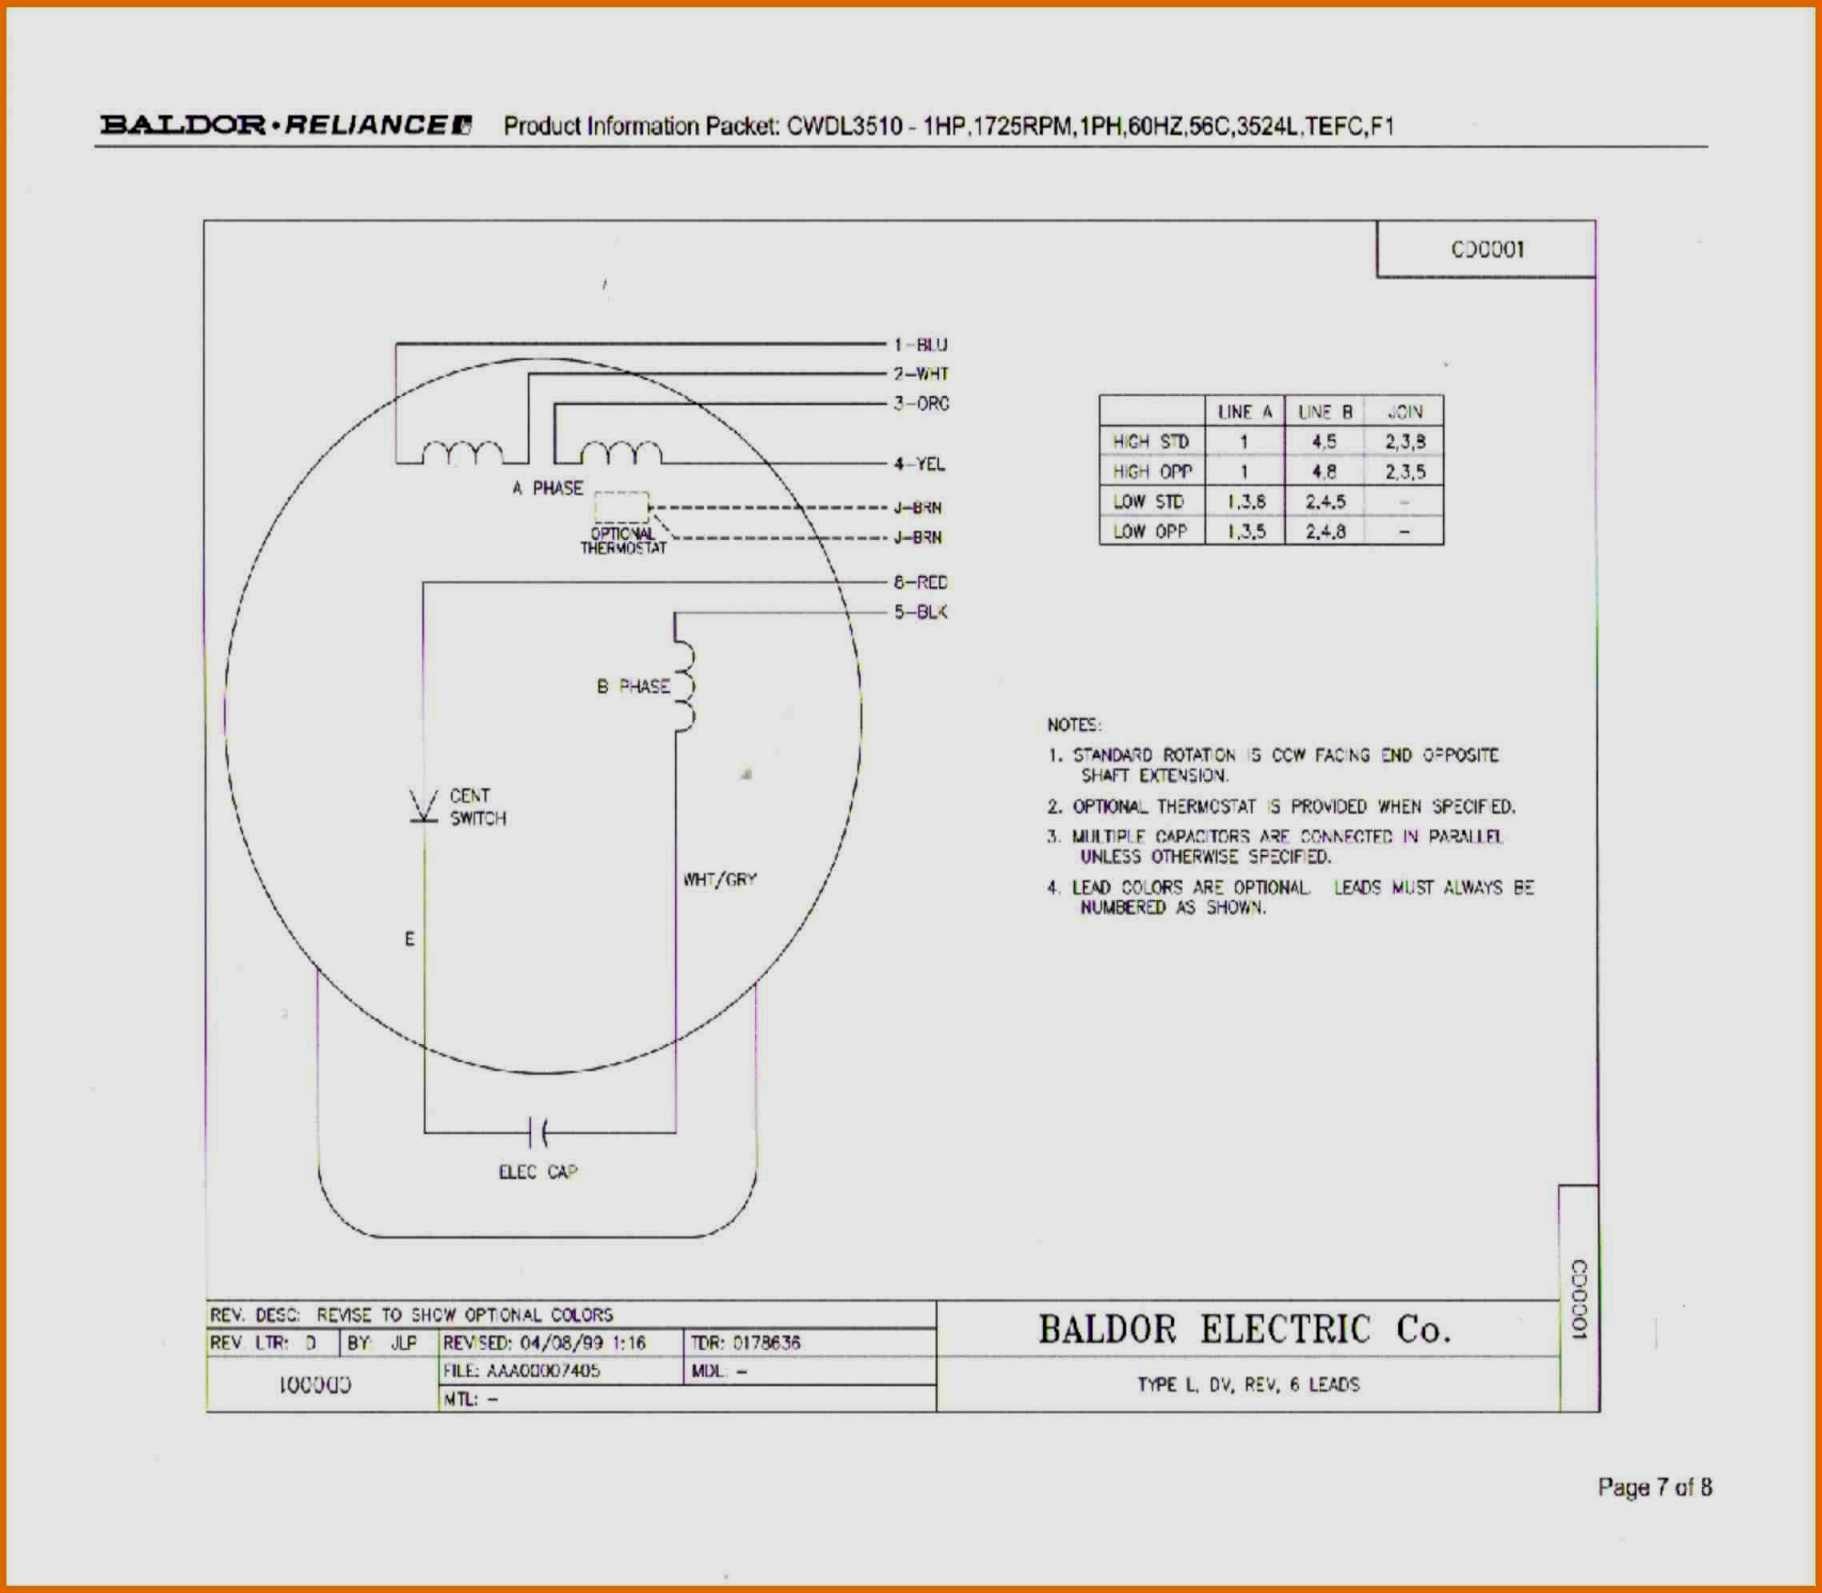 For Marathon Electric Motor Single Phase Wiring Diagrams | Wiring - 3 Phase 6 Lead Motor Wiring Diagram